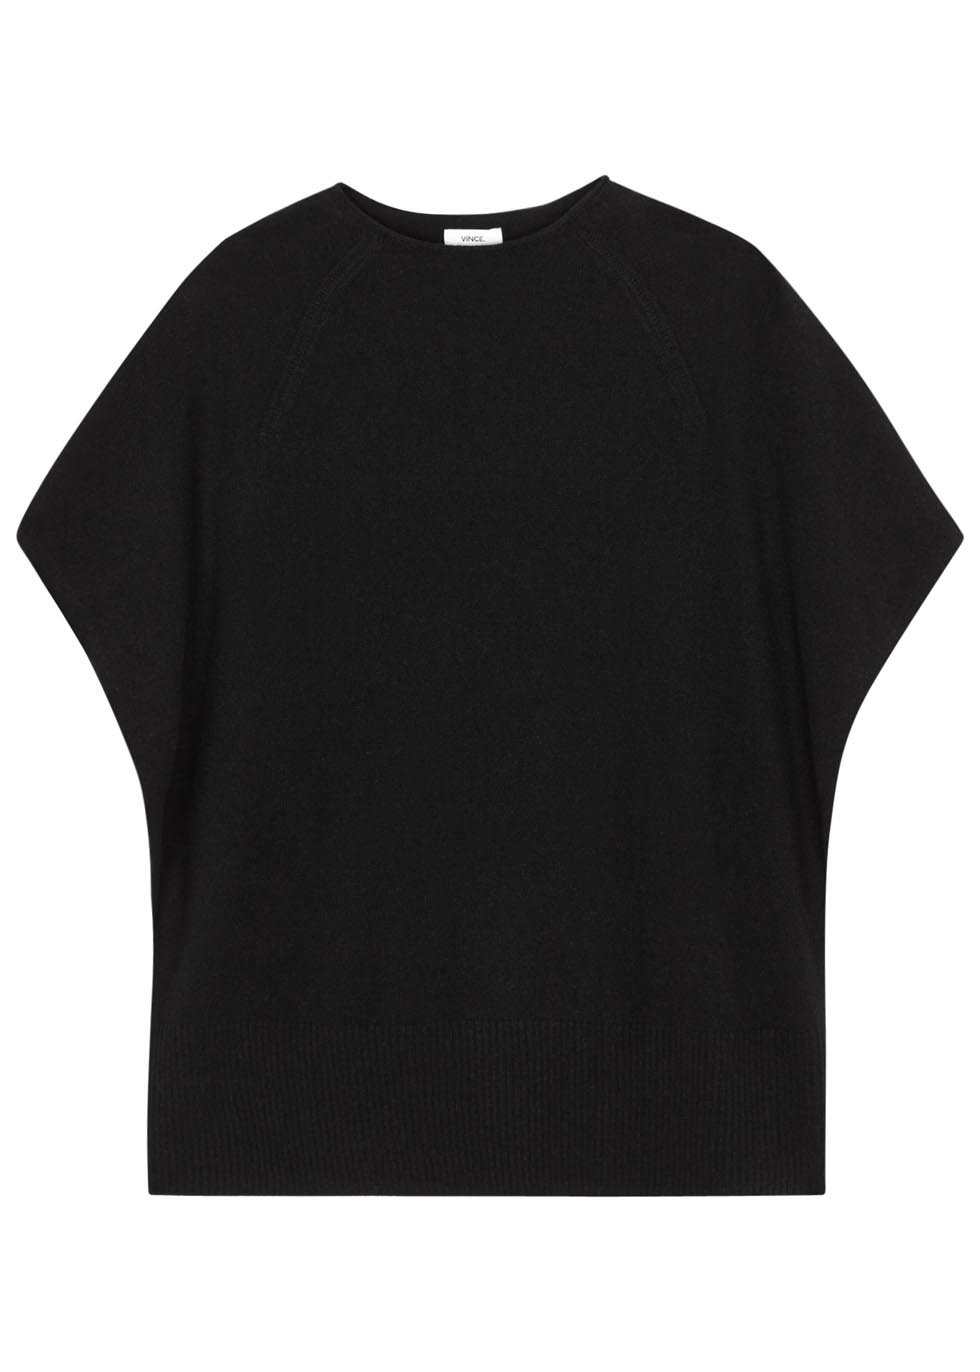 Black Cashmere Top - pattern: plain; predominant colour: black; occasions: casual; length: standard; style: top; fit: body skimming; neckline: crew; fibres: cashmere - 100%; sleeve length: short sleeve; sleeve style: standard; texture group: knits/crochet; pattern type: knitted - fine stitch; season: s/s 2016; wardrobe: basic